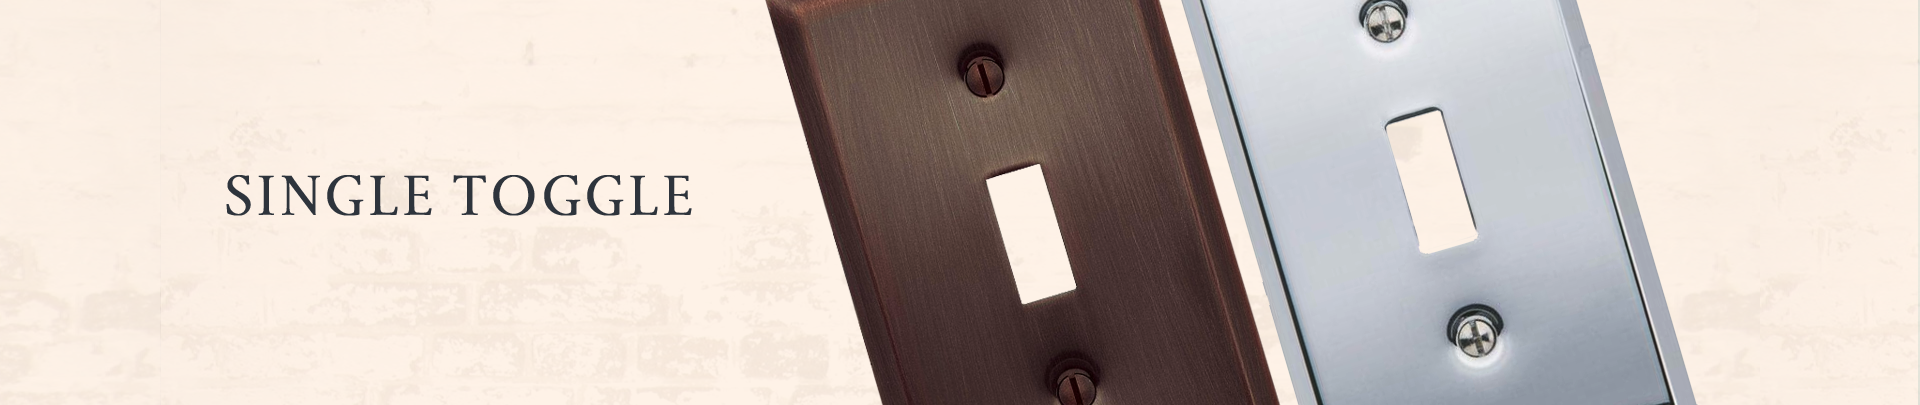 switchplates-single-toggle.png